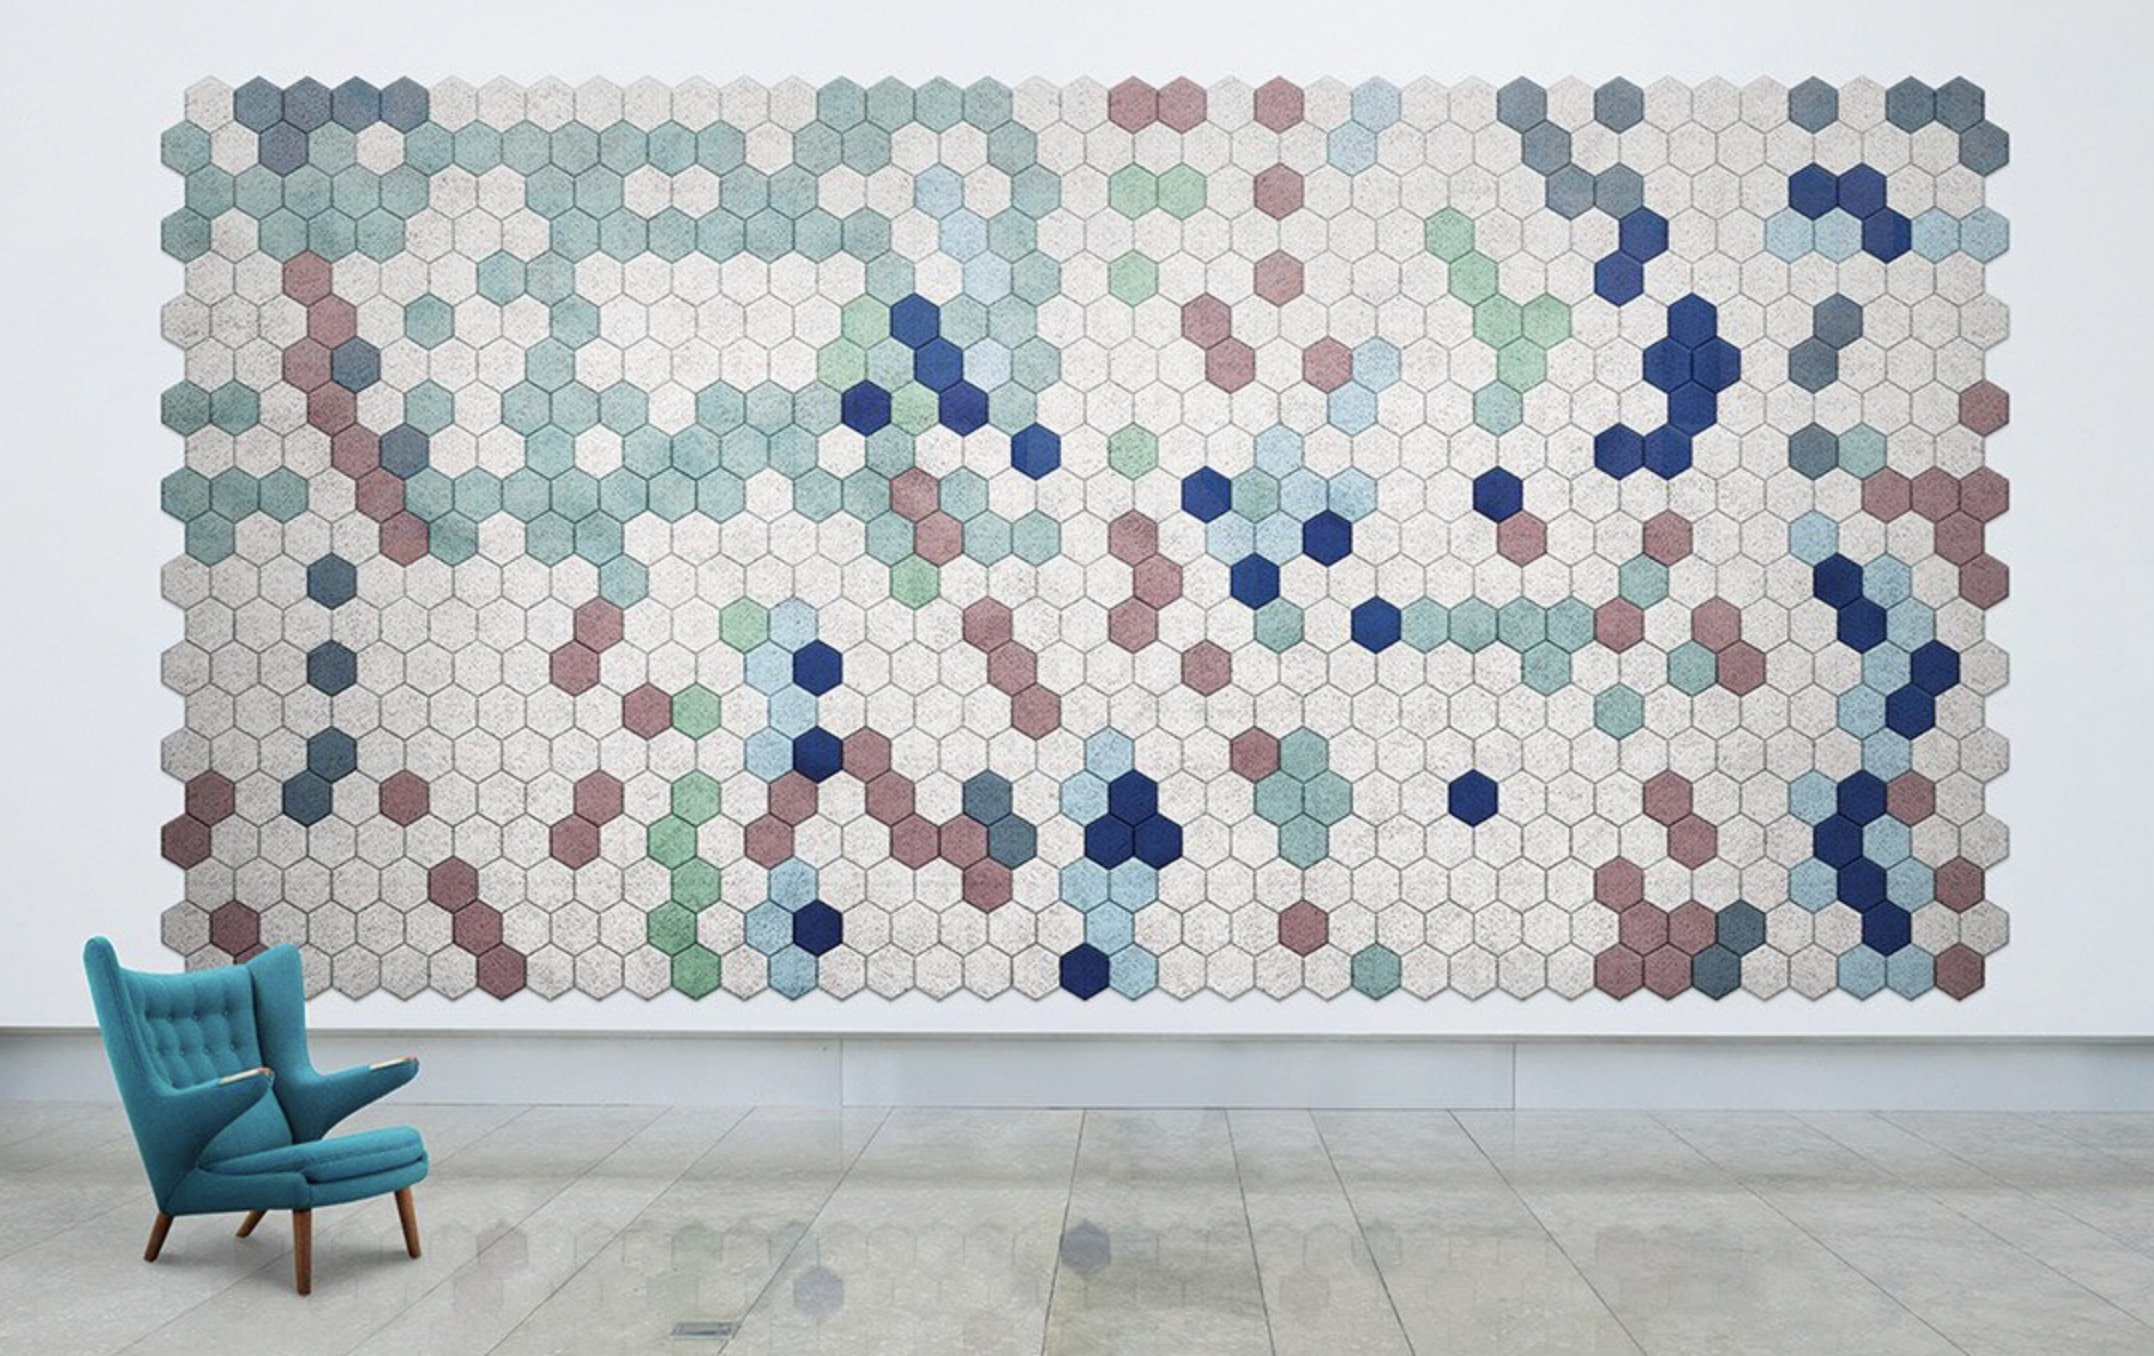 Sweden's Baux makes acoustic tiles in funky shapes and colours